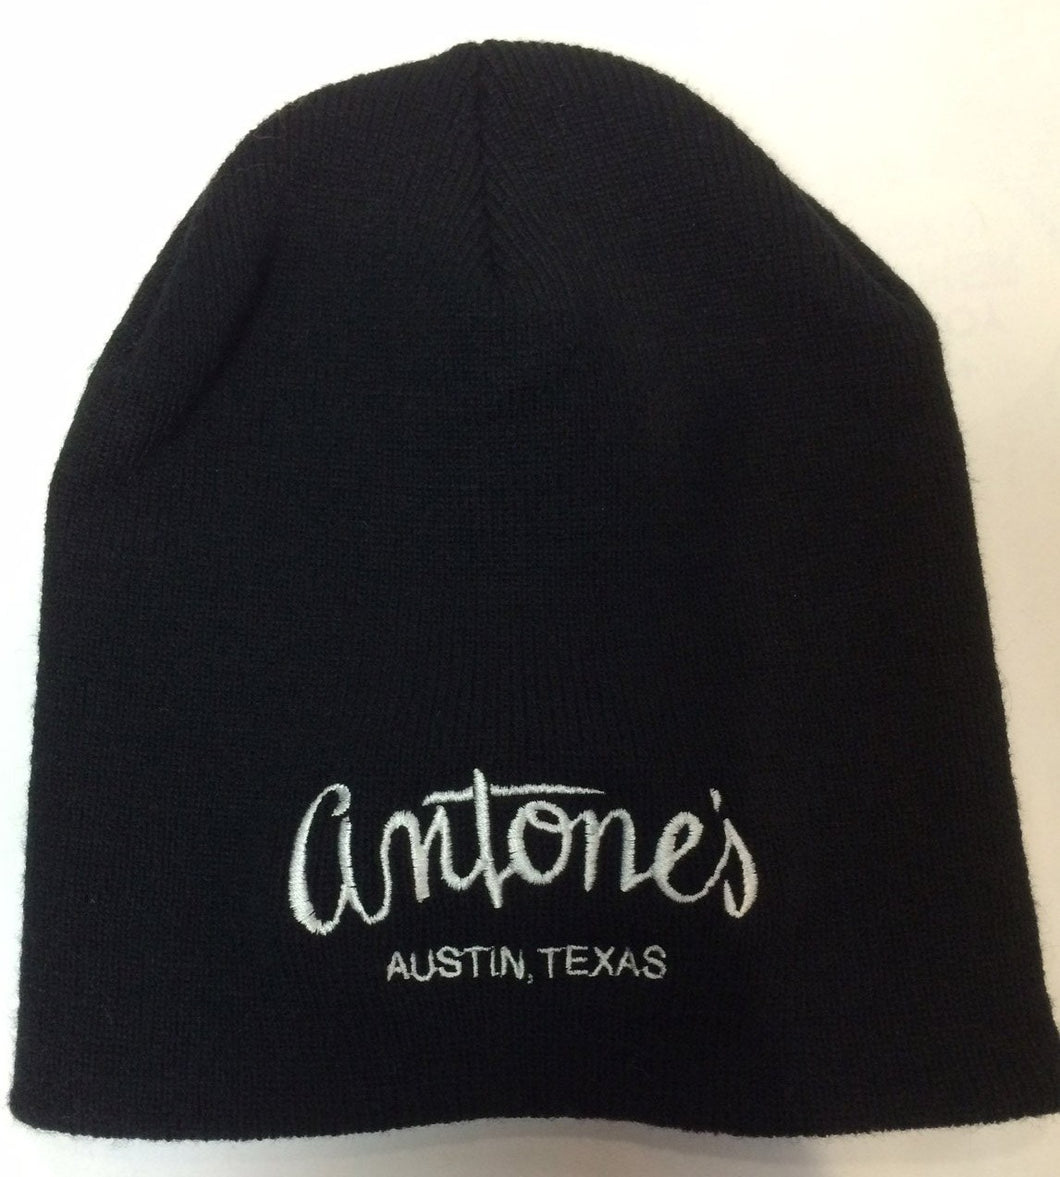 Antone's Beanie - Black - Miscellaneous